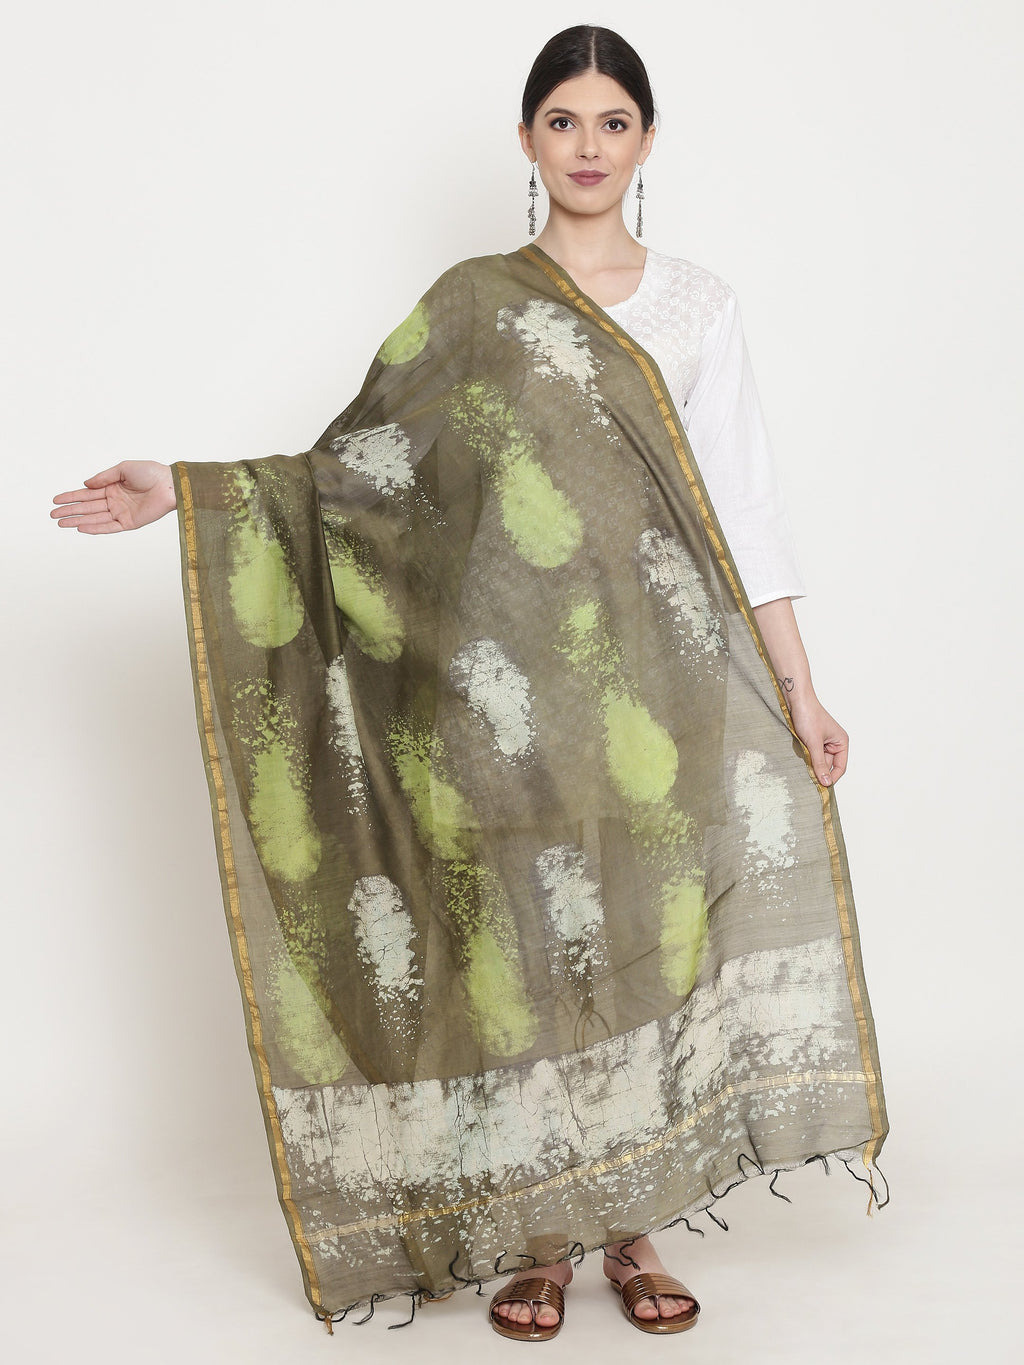 Exotic Chanderi Silk Handmade Dupatta-Dupatta-Kalakari India-BHKPDP0009-Chanderi, Dupatta, Geographical Indication, Hand Blocks, Hand Crafted, Heritage Prints, Silk, Sustainable Fabrics-[Linen,Ethnic,wear,Fashionista,Handloom,Handicraft,Indigo,blockprint,block,print,Cotton,Chanderi,Blue, latest,classy,party,bollywood,trendy,summer,style,traditional,formal,elegant,unique,style,hand,block,print, dabu,booti,gift,present,glamorous,affordable,collectible,Sari,Saree,printed, holi, Diwali, birthday, an